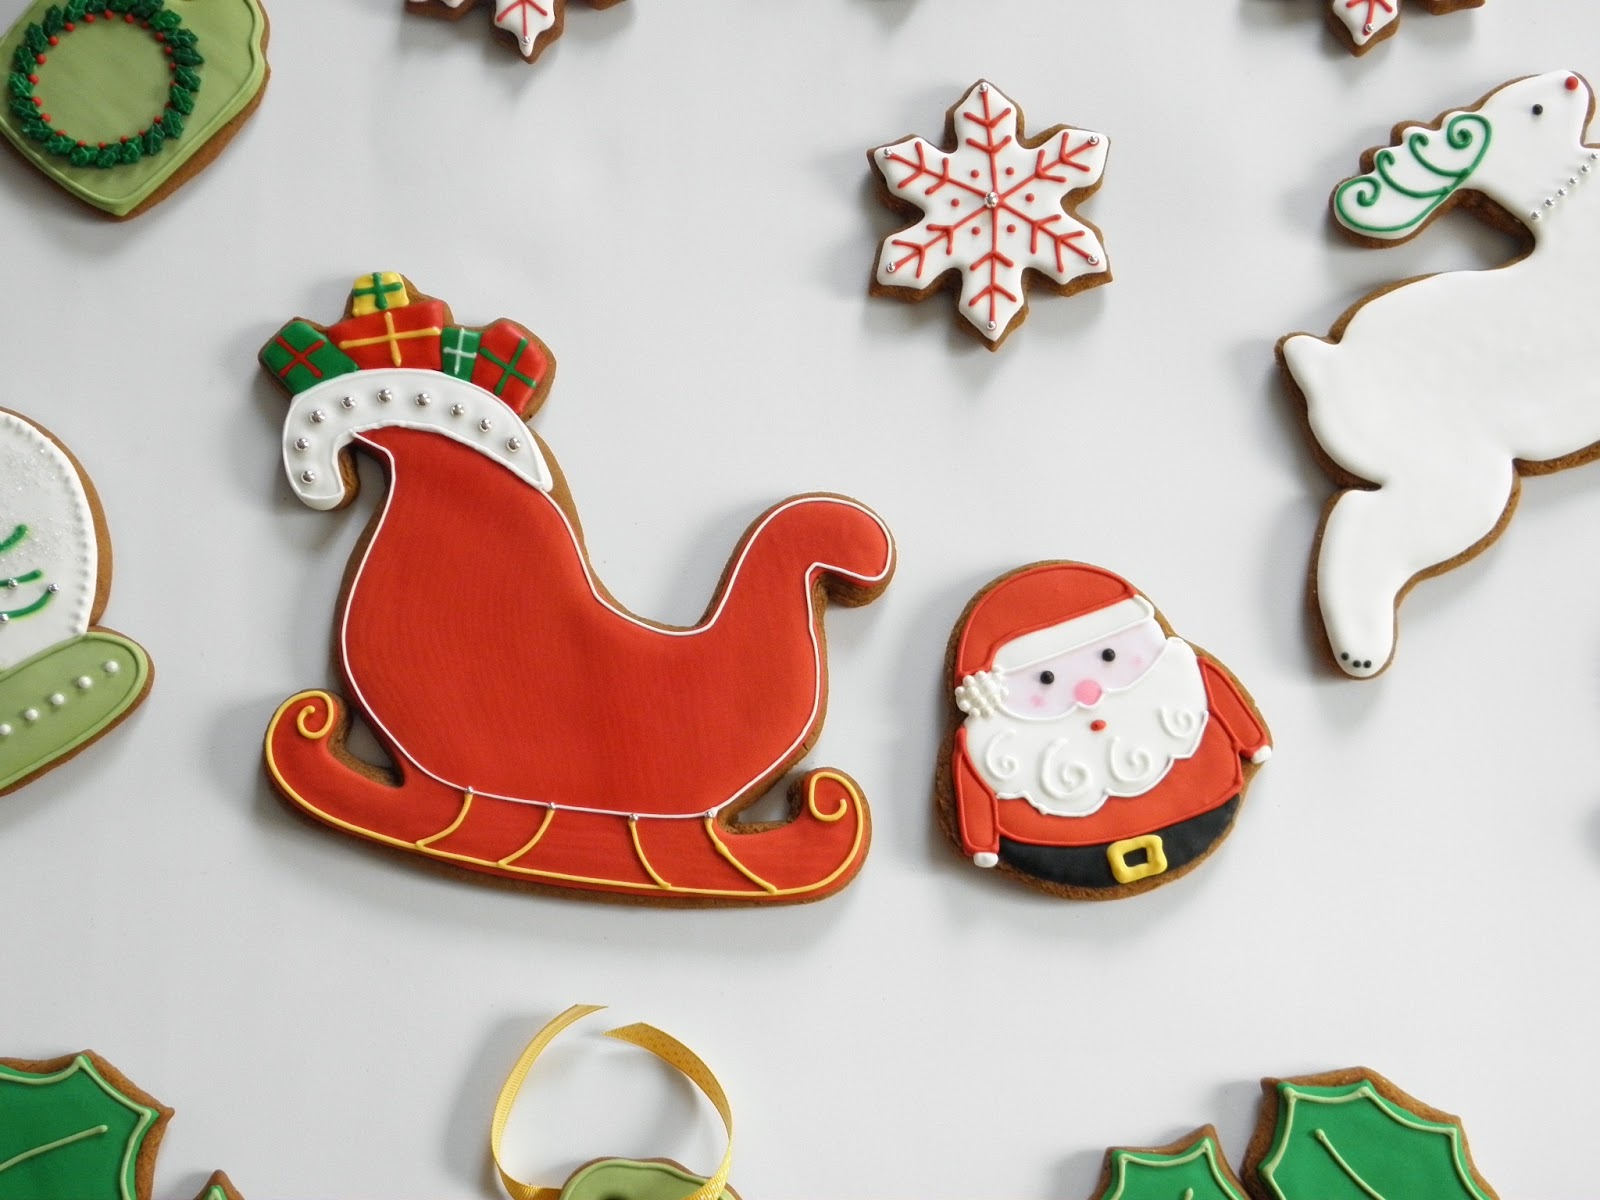 Good Things By David Here Comes Santa Claus Cookies